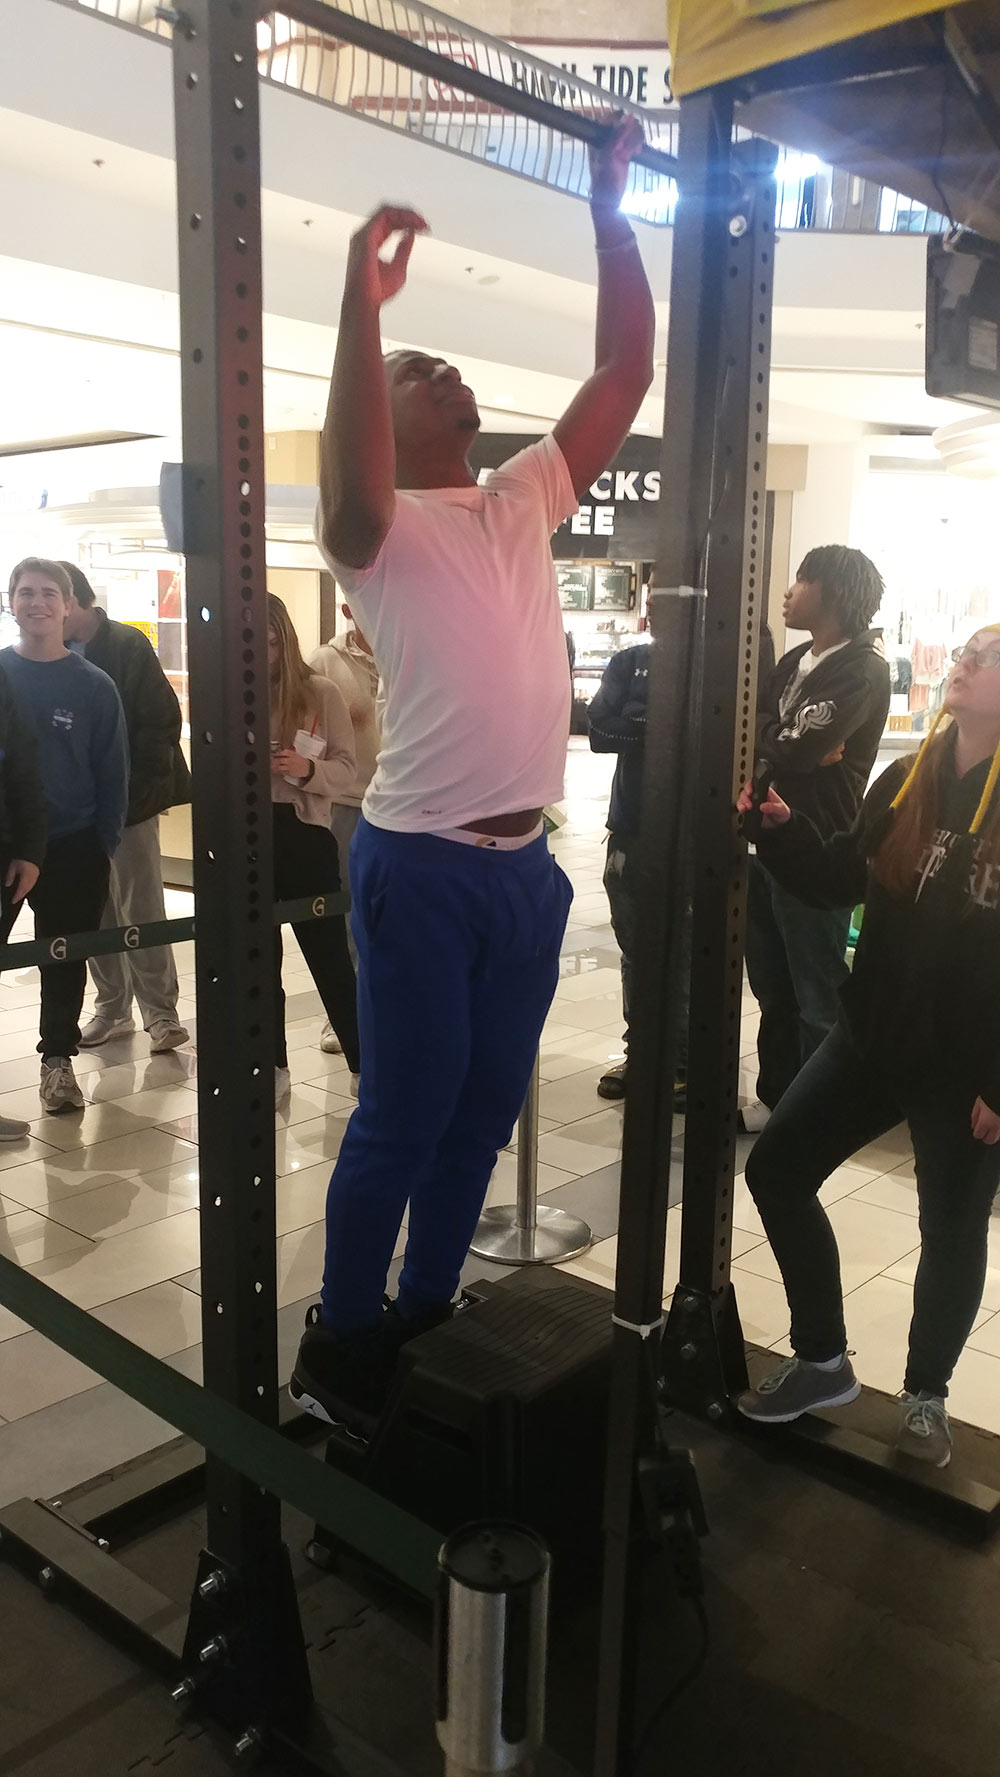 Young male attempts a pullup as others look on - appears to be in a mall